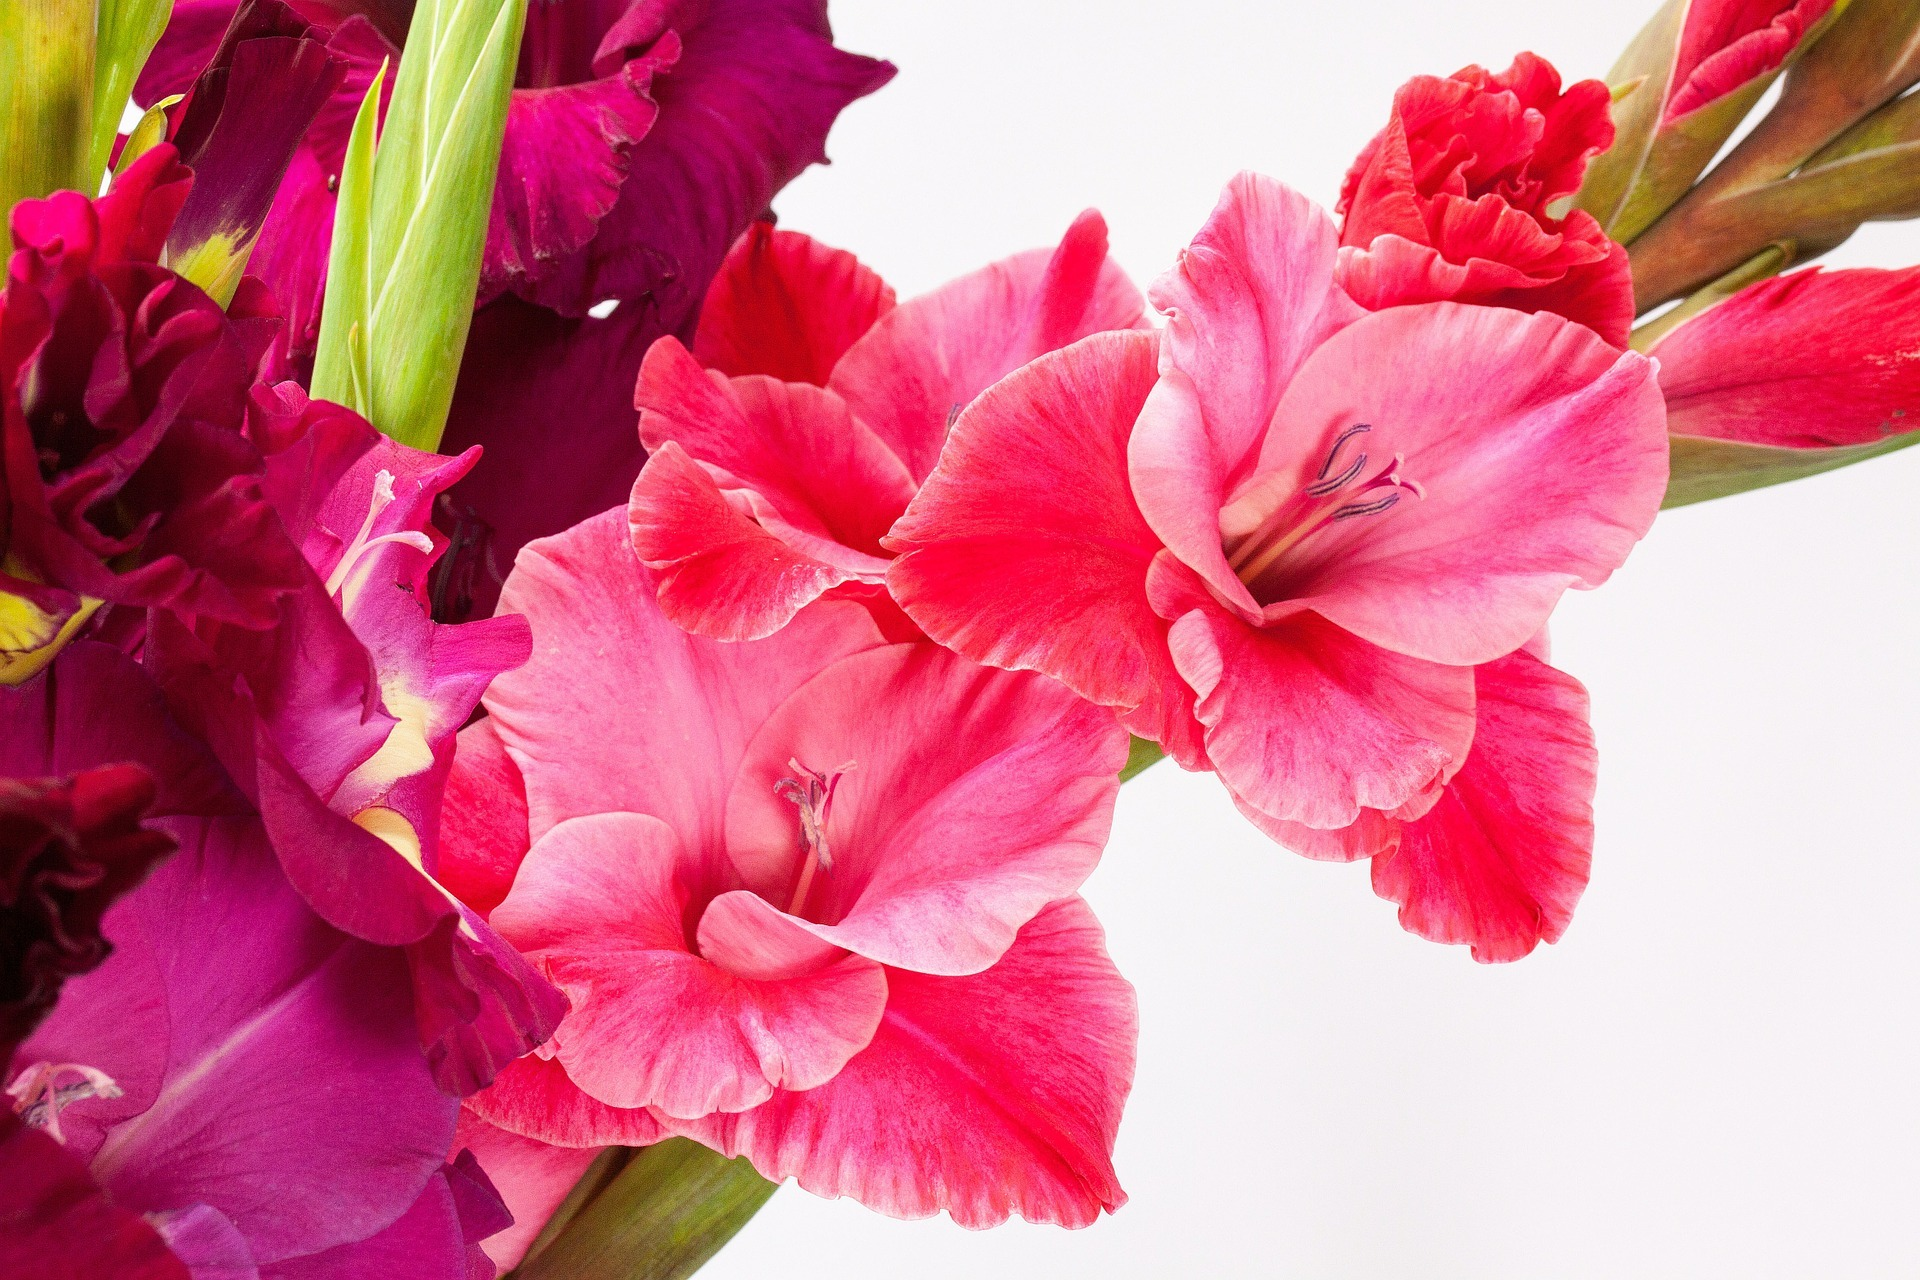 August Birth Flowers: Gladiolus and Poppy | Meanings | The Old ...